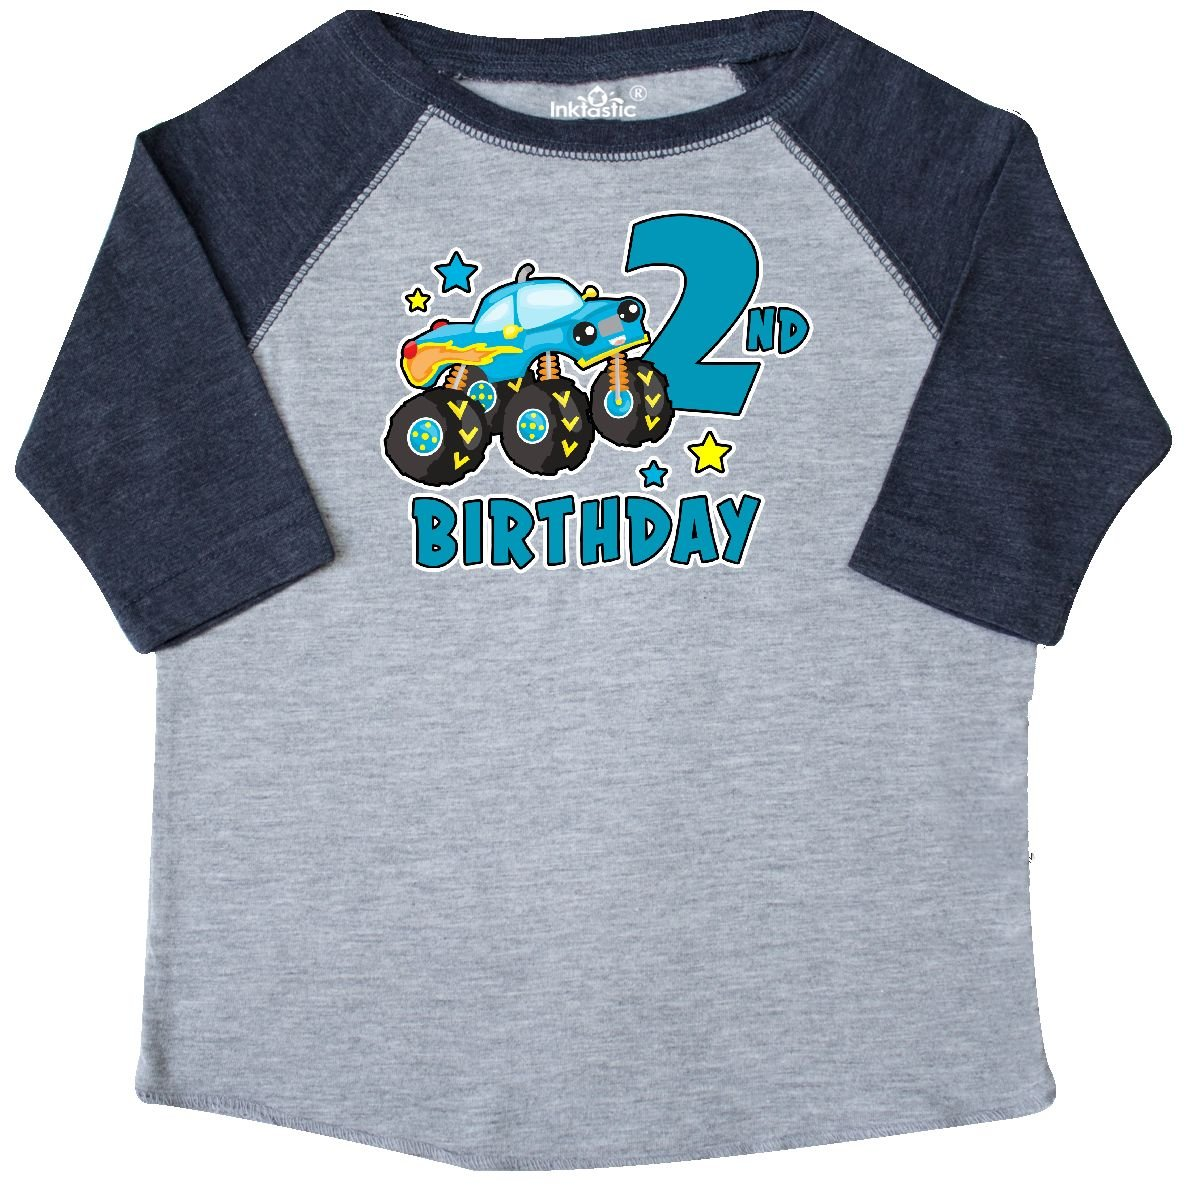 inktastic 2nd Birthday Monster Truck Toddler T-Shirt 2T Heather and Navy by inktastic